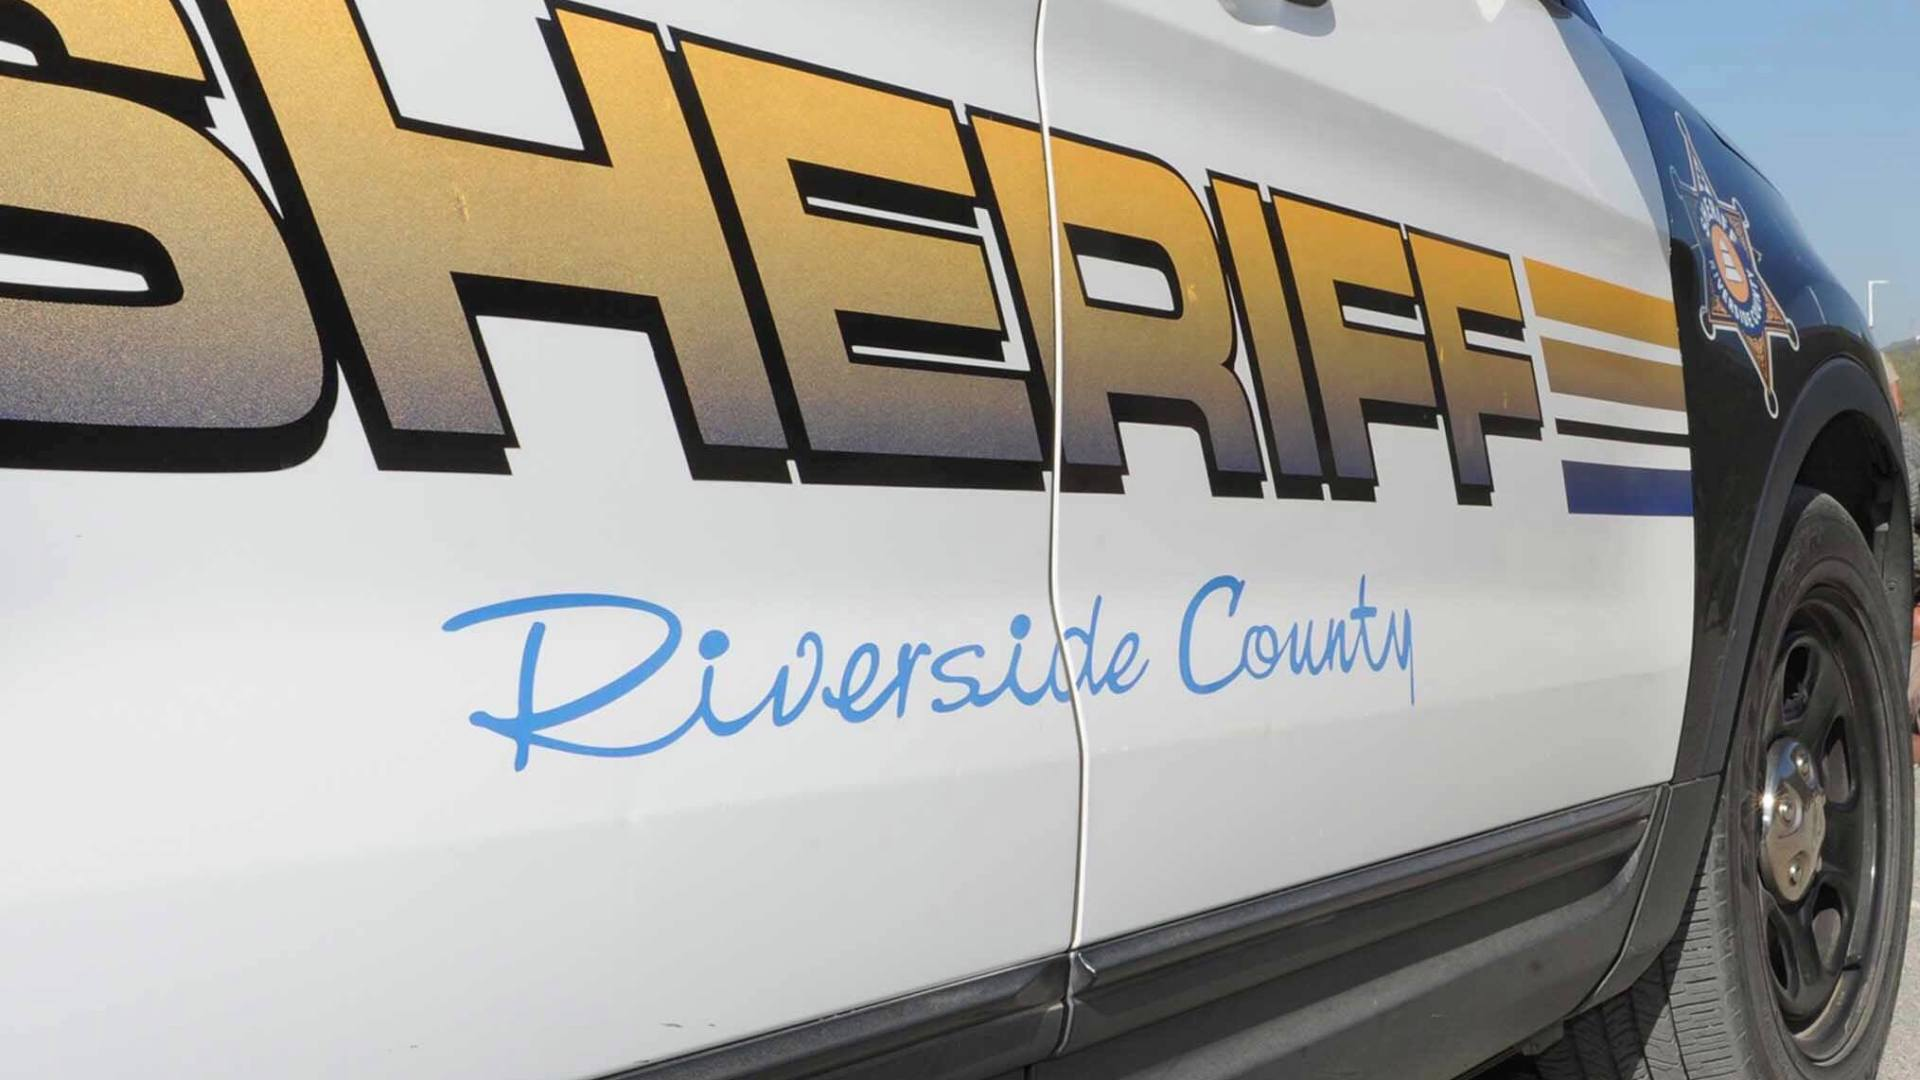 A Riverside County Sheriff's Department vehicle is seen in an undated photo shared by the agency.